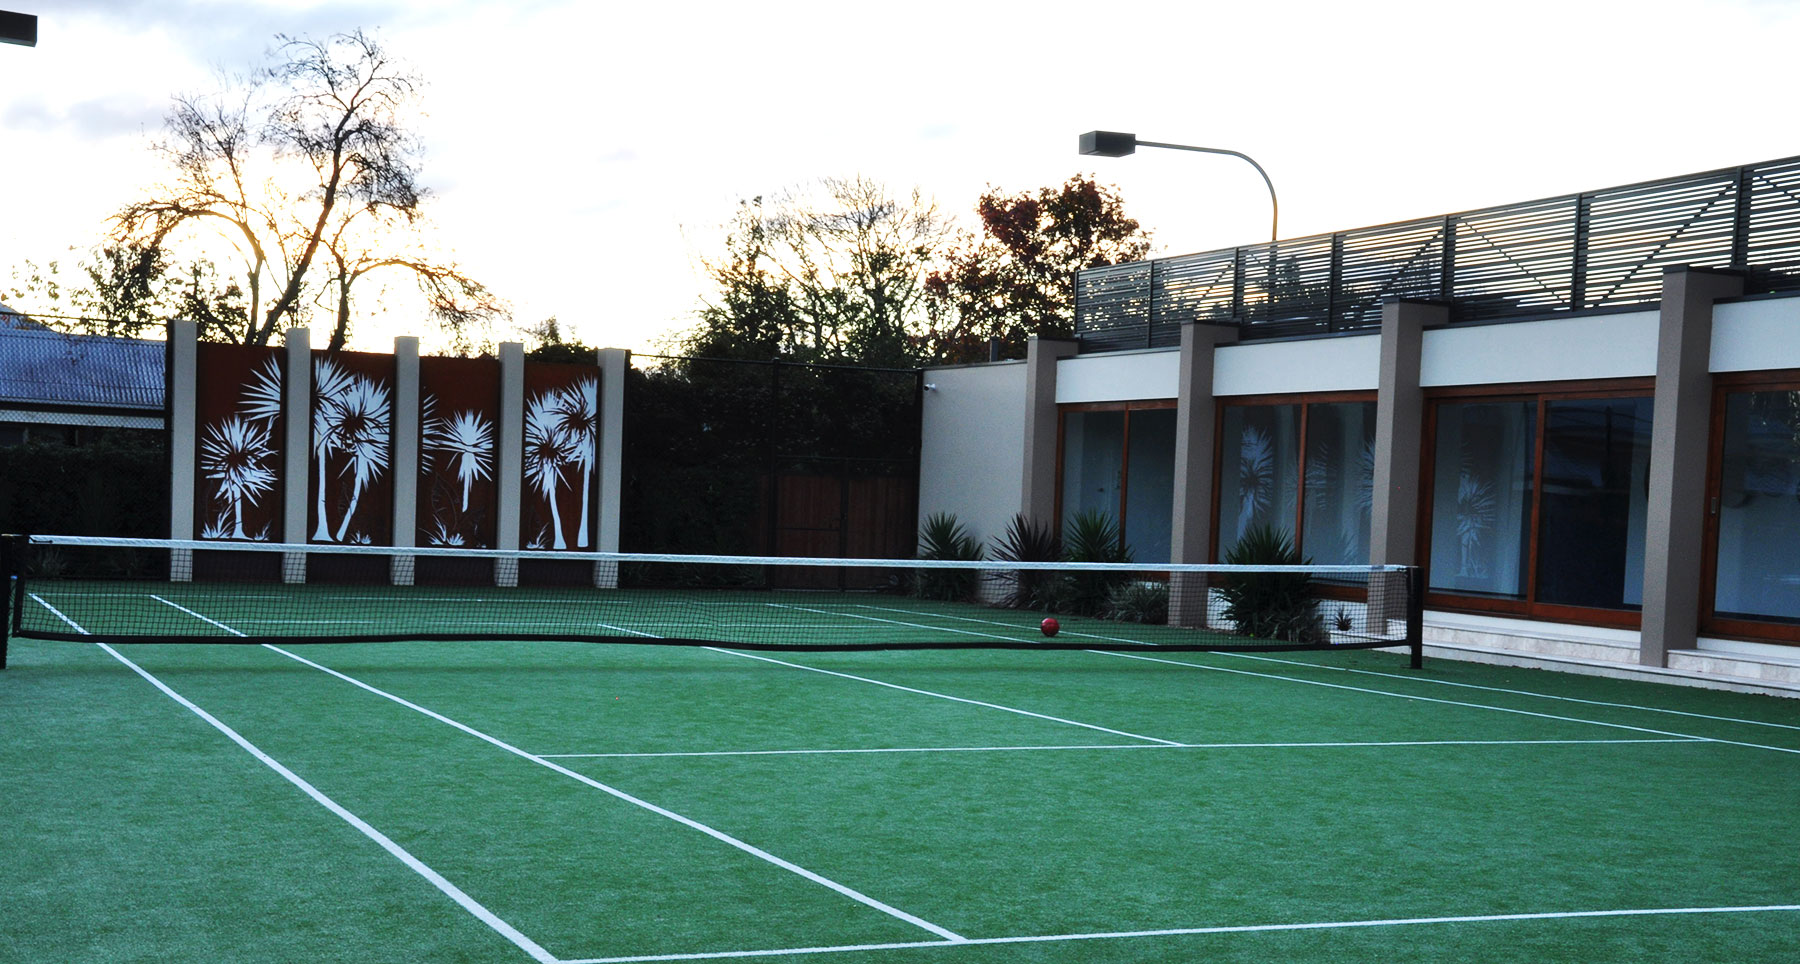 LW-Tennis-Court-1